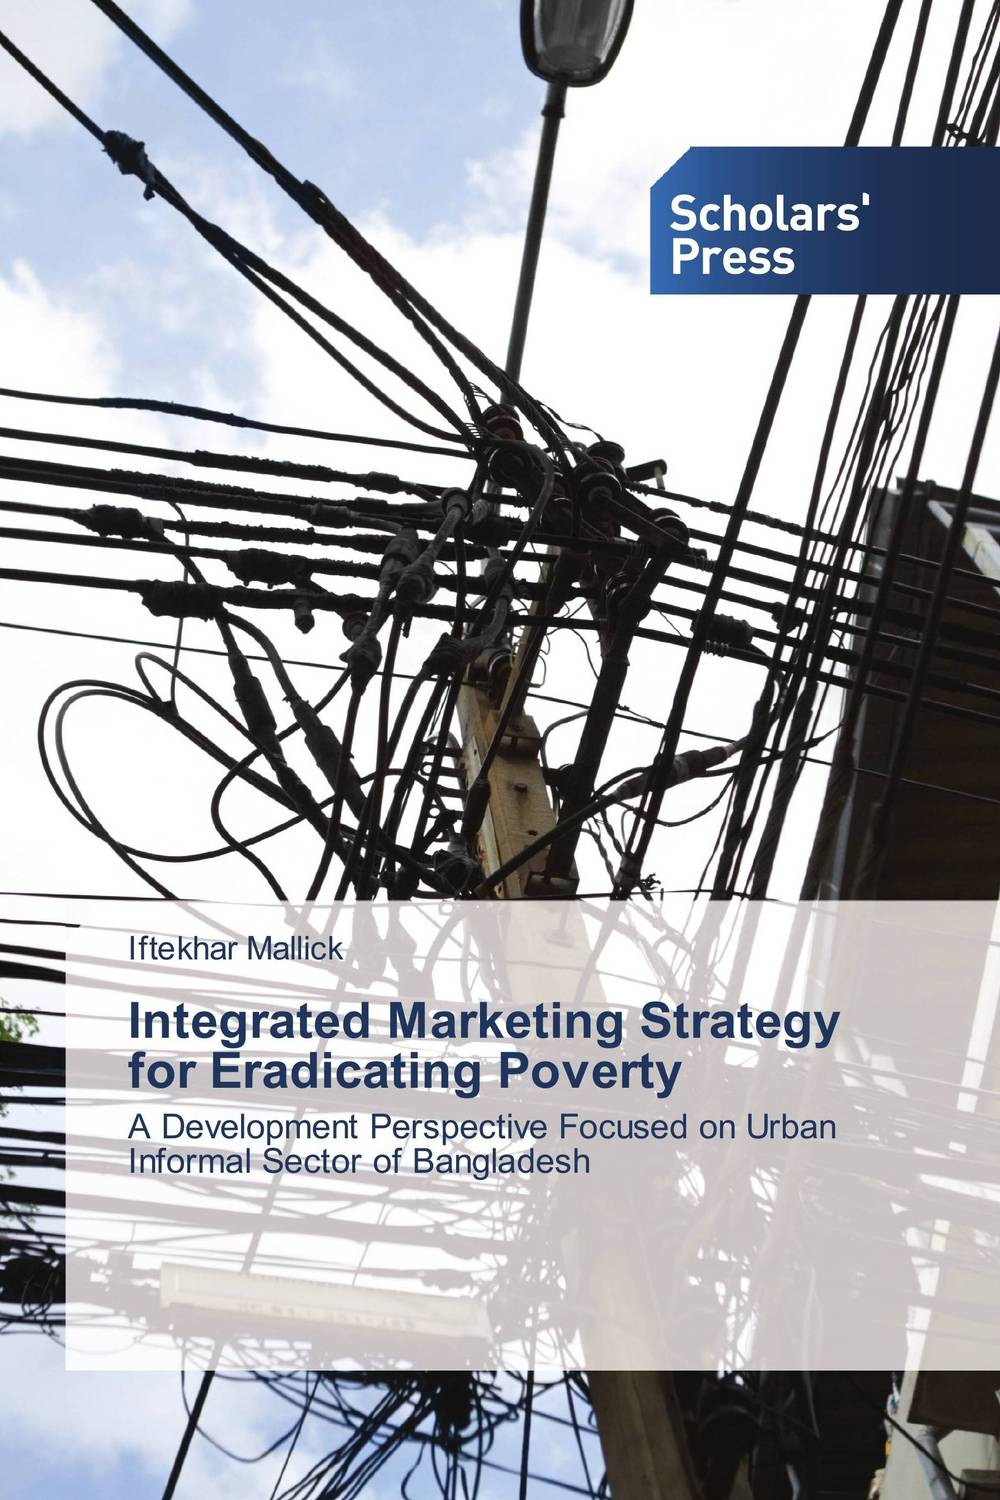 Integrated Marketing Strategy for Eradicating Poverty the role of informal sectors for urban poverty reduction